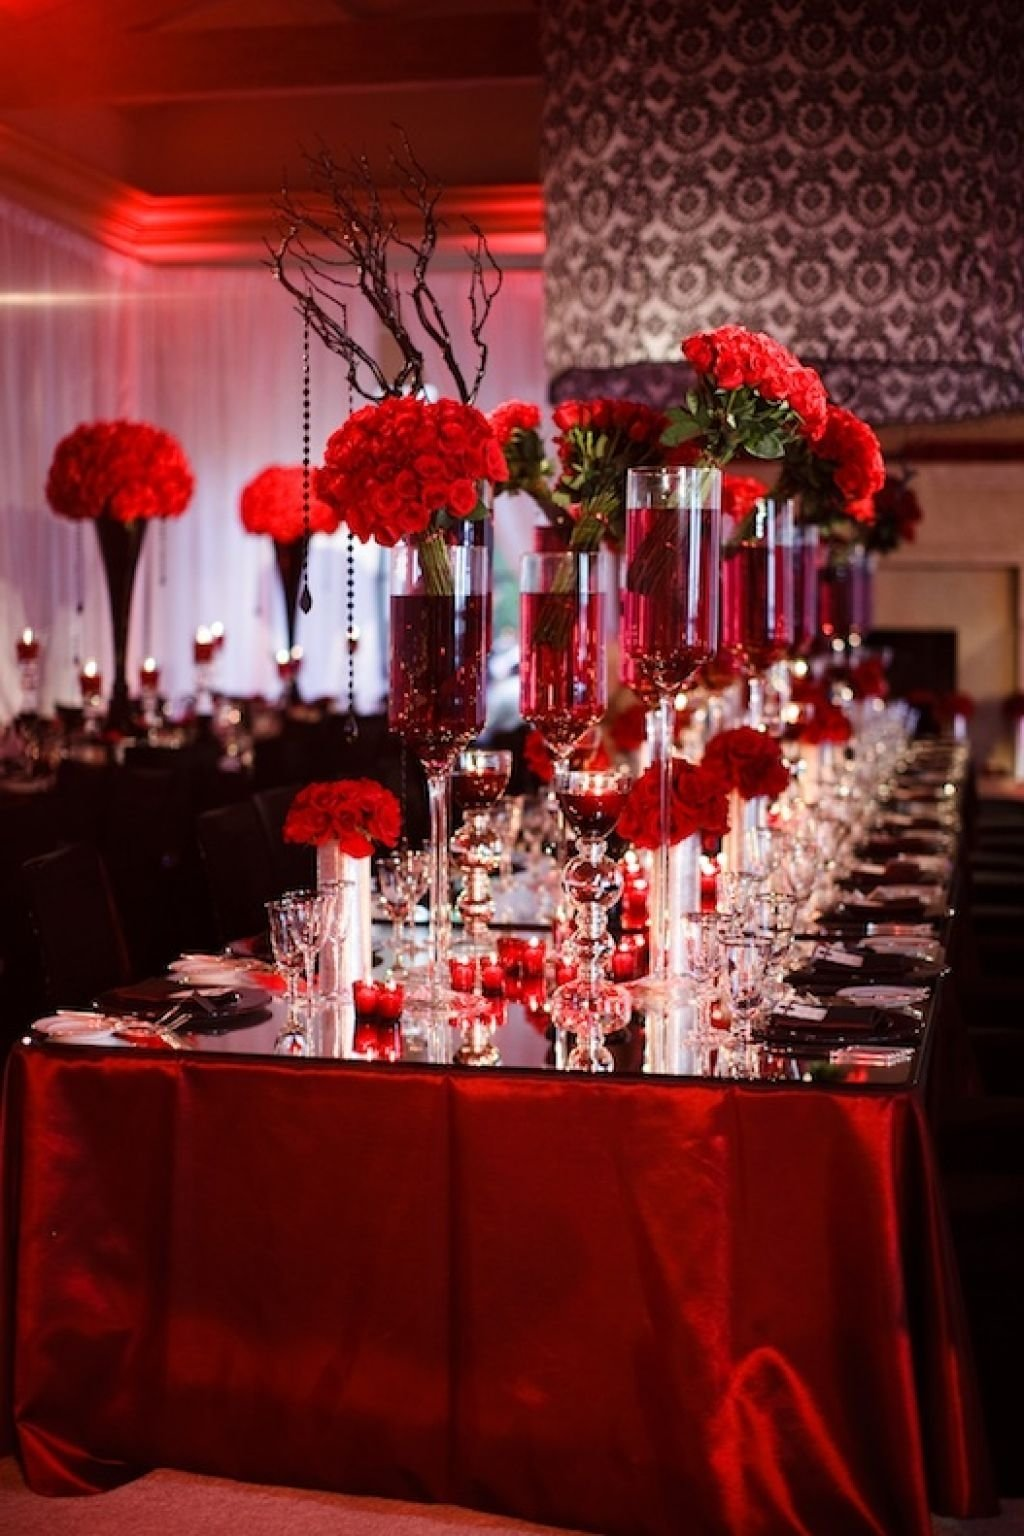 10 Attractive Red And Black Wedding Ideas wedding decorations red and white wedding ideas uxjj 3 2021